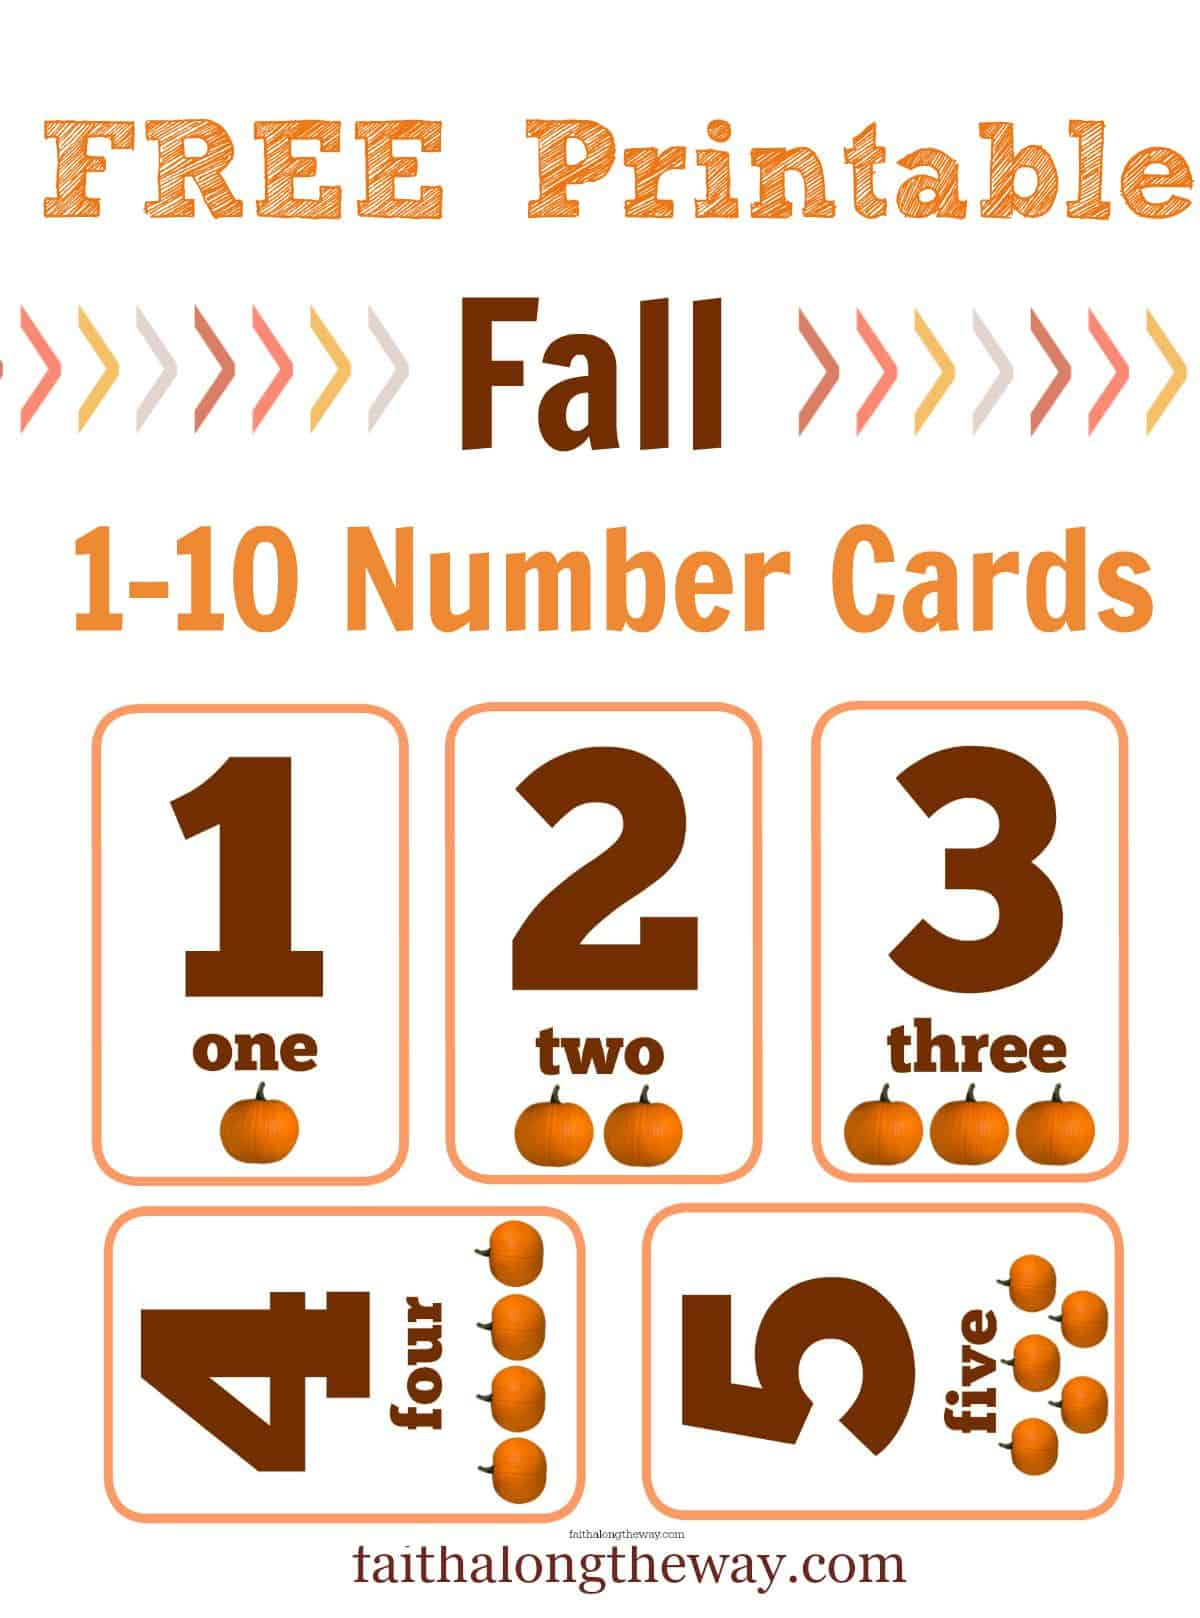 Free Printable Fall 1-10 Number Cards